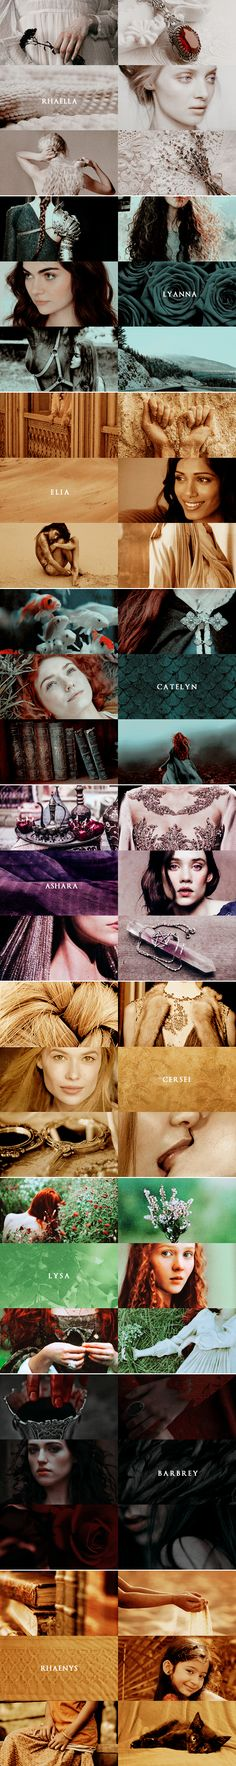 a song of ice and fire aesthetics: (pre-asoiaf) L A D I E S